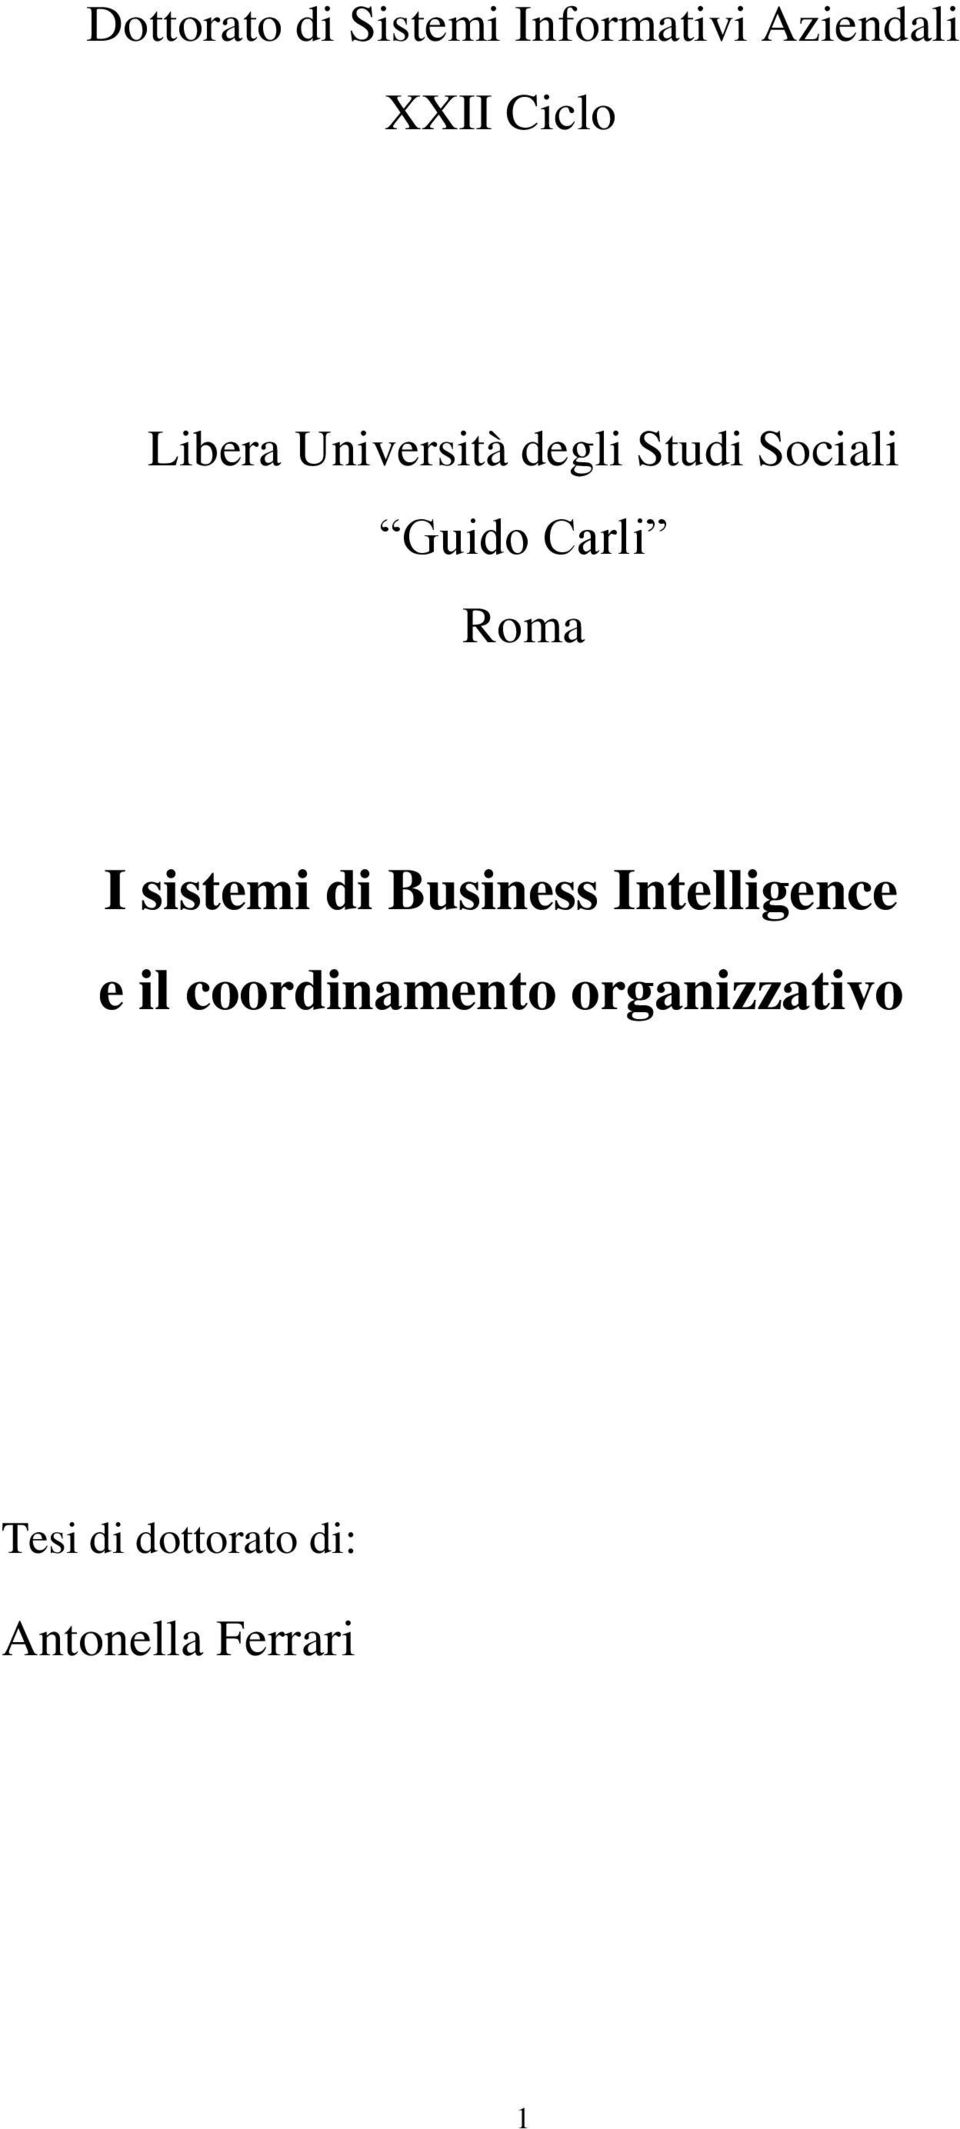 I sistemi di Business Intelligence e il coordinamento